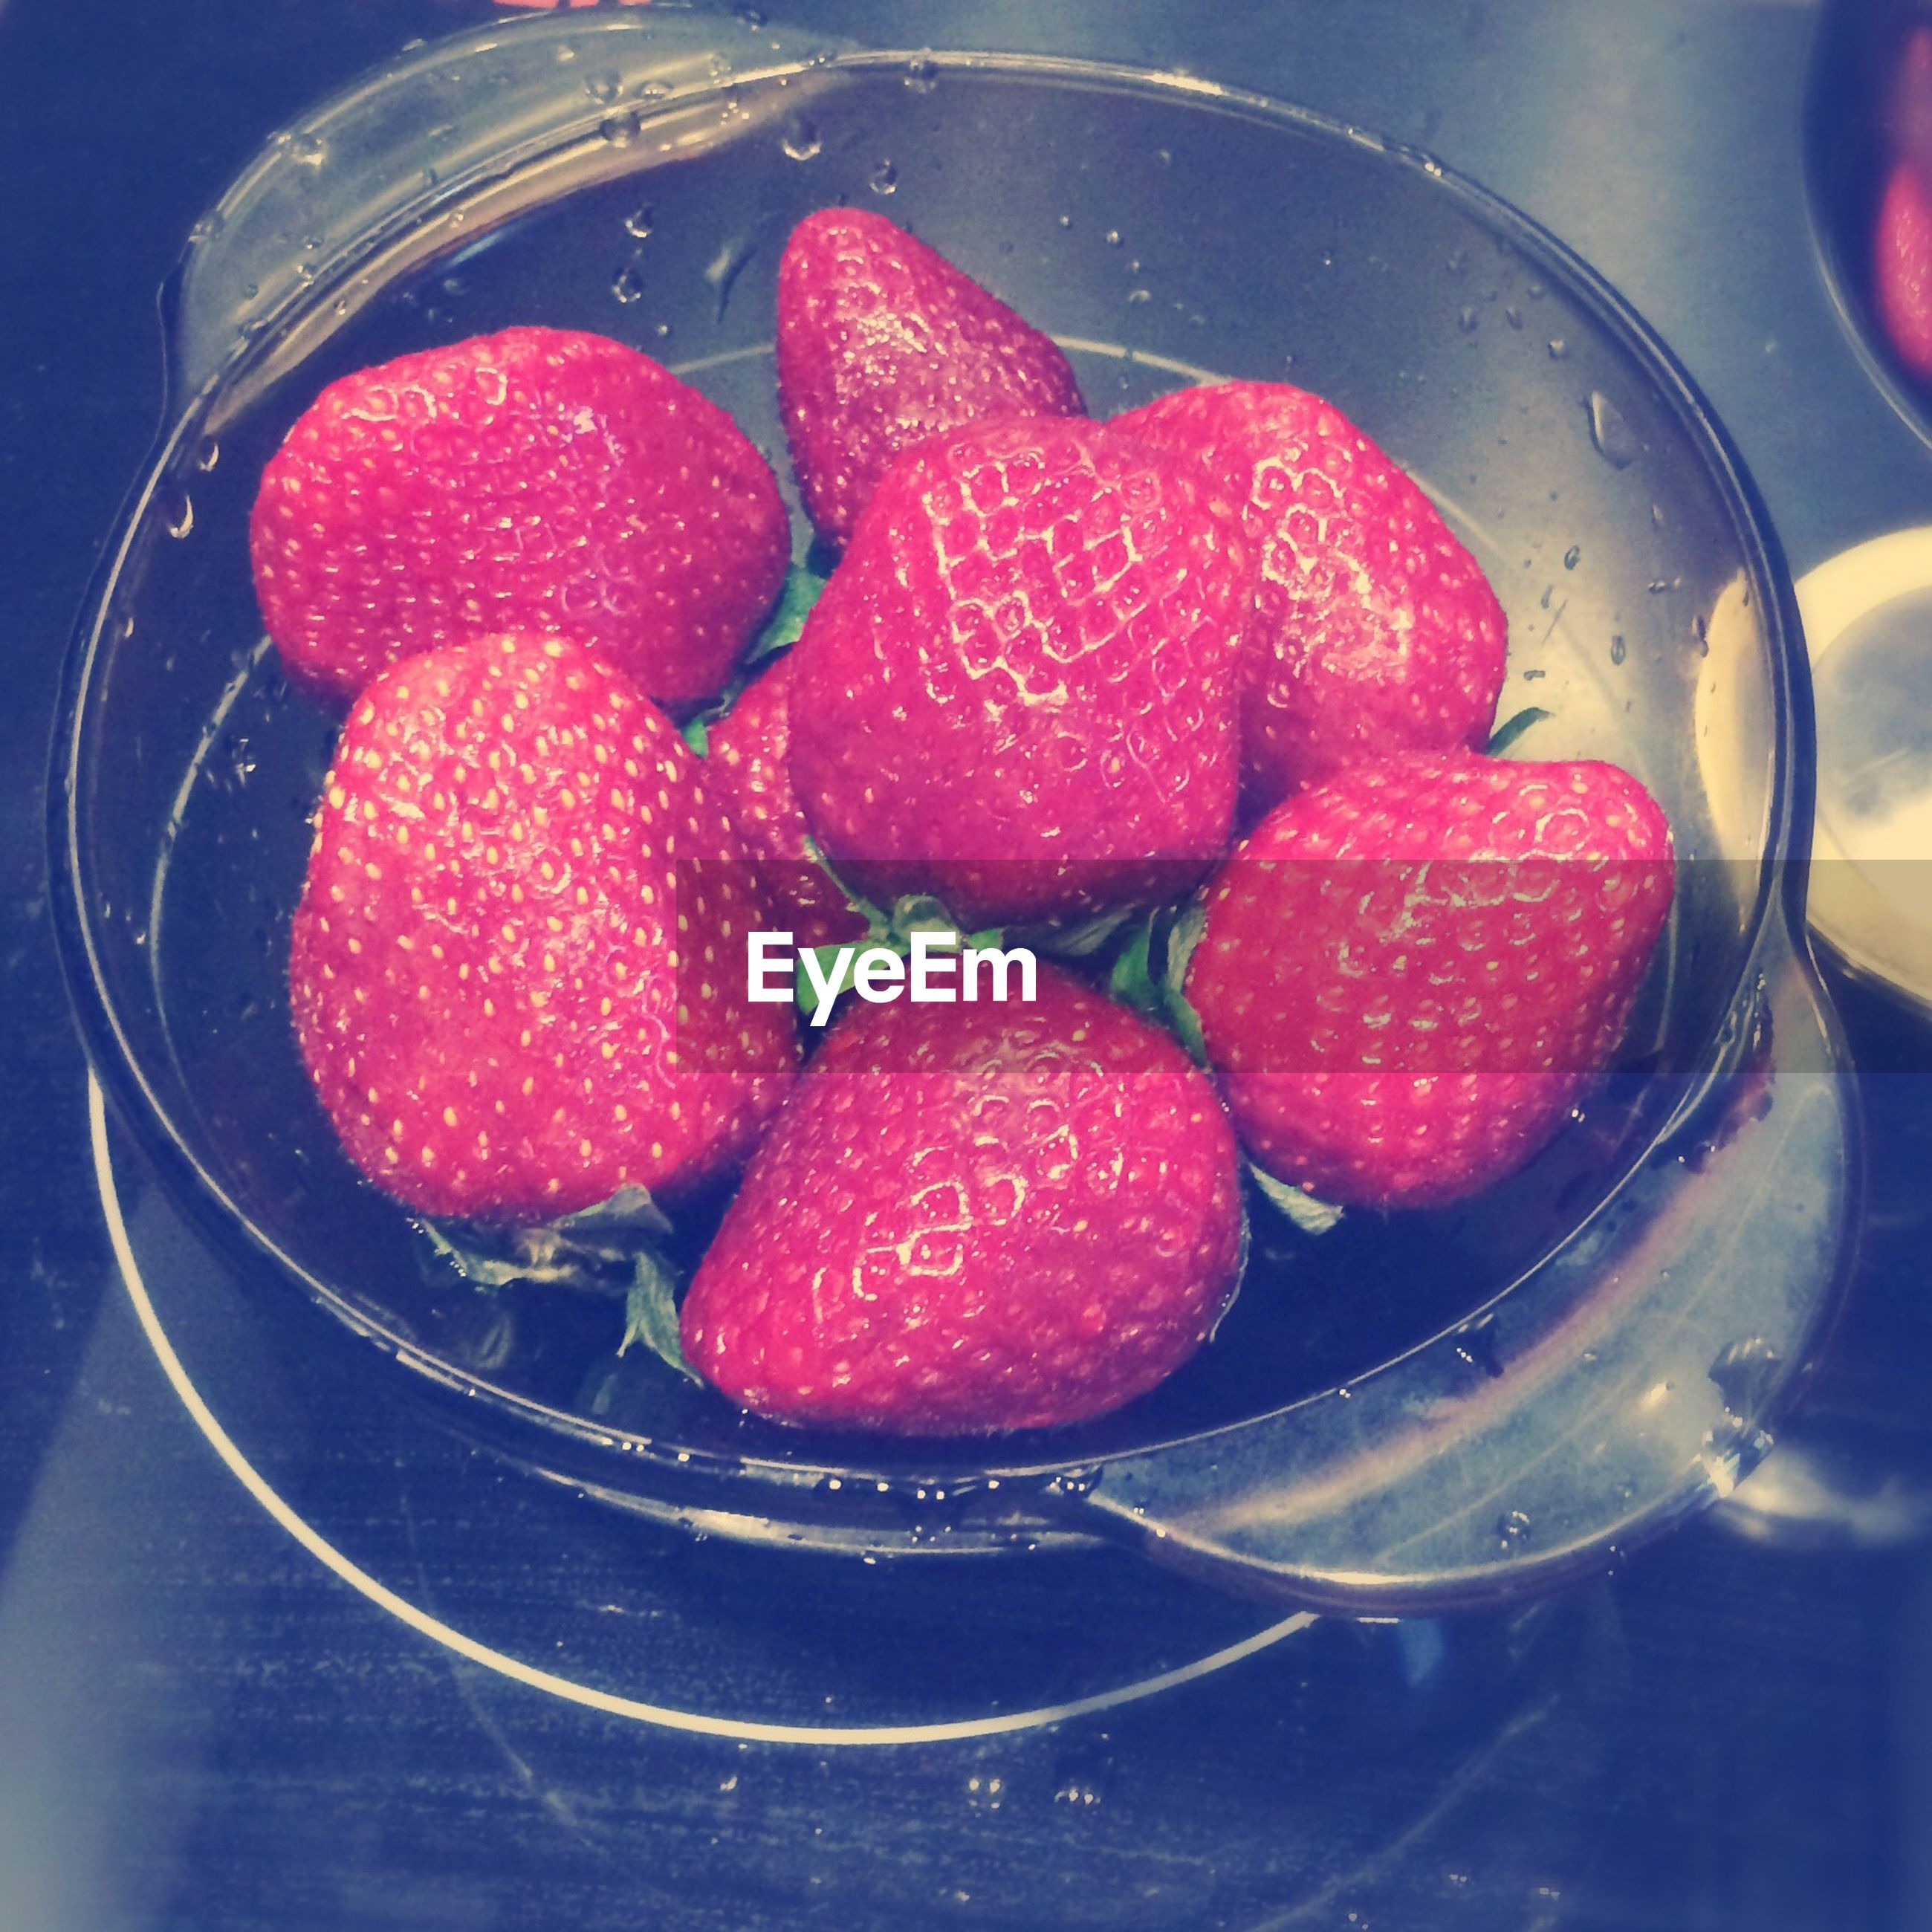 food and drink, food, red, fruit, strawberry, freshness, indoors, healthy eating, sweet food, close-up, berry fruit, raspberry, still life, indulgence, ready-to-eat, high angle view, berry, juicy, no people, dessert